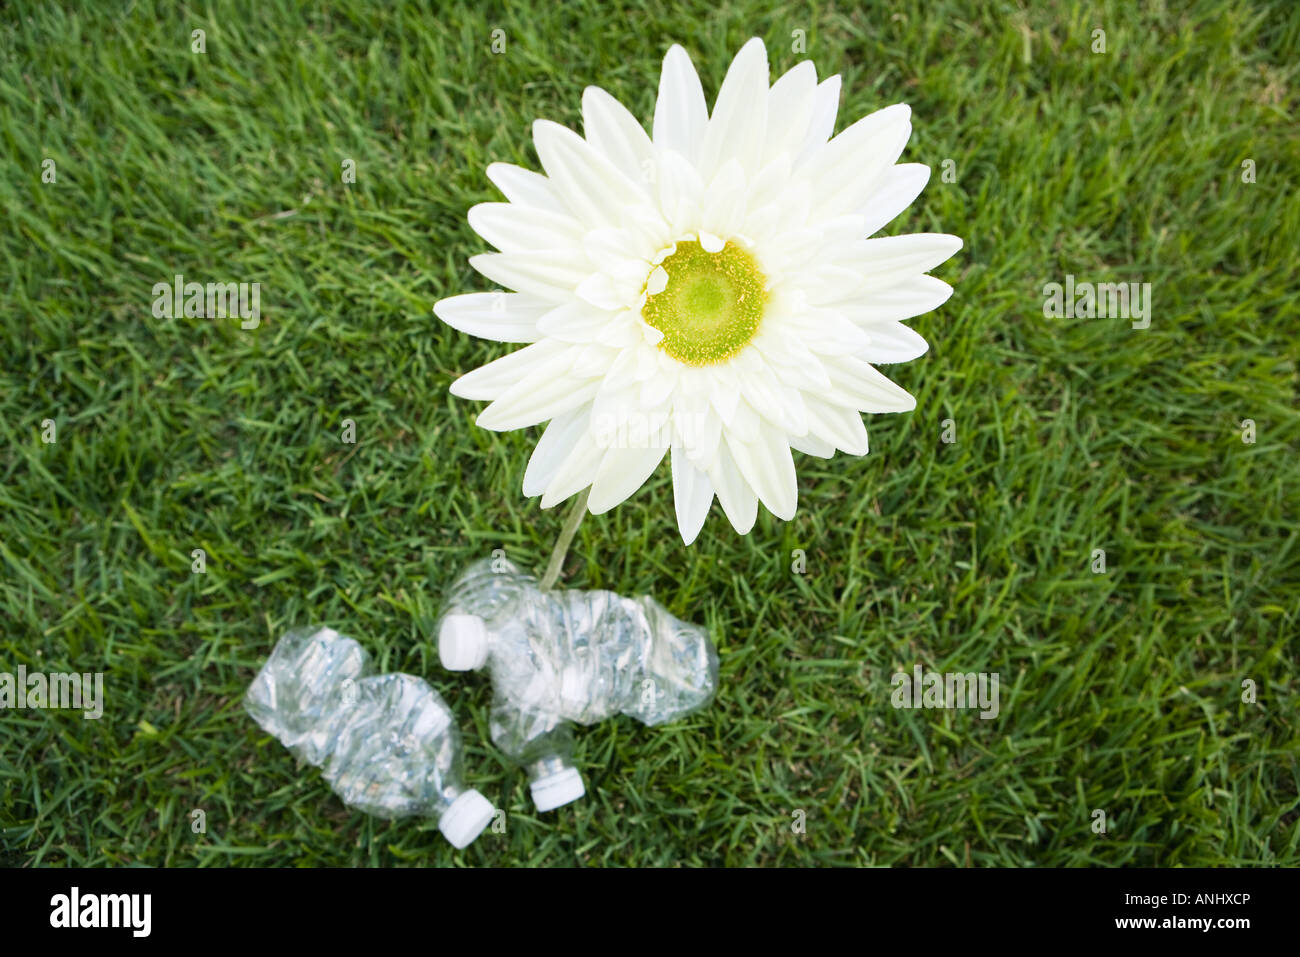 Flower growing next to discarded water bottles, high angle view - Stock Image